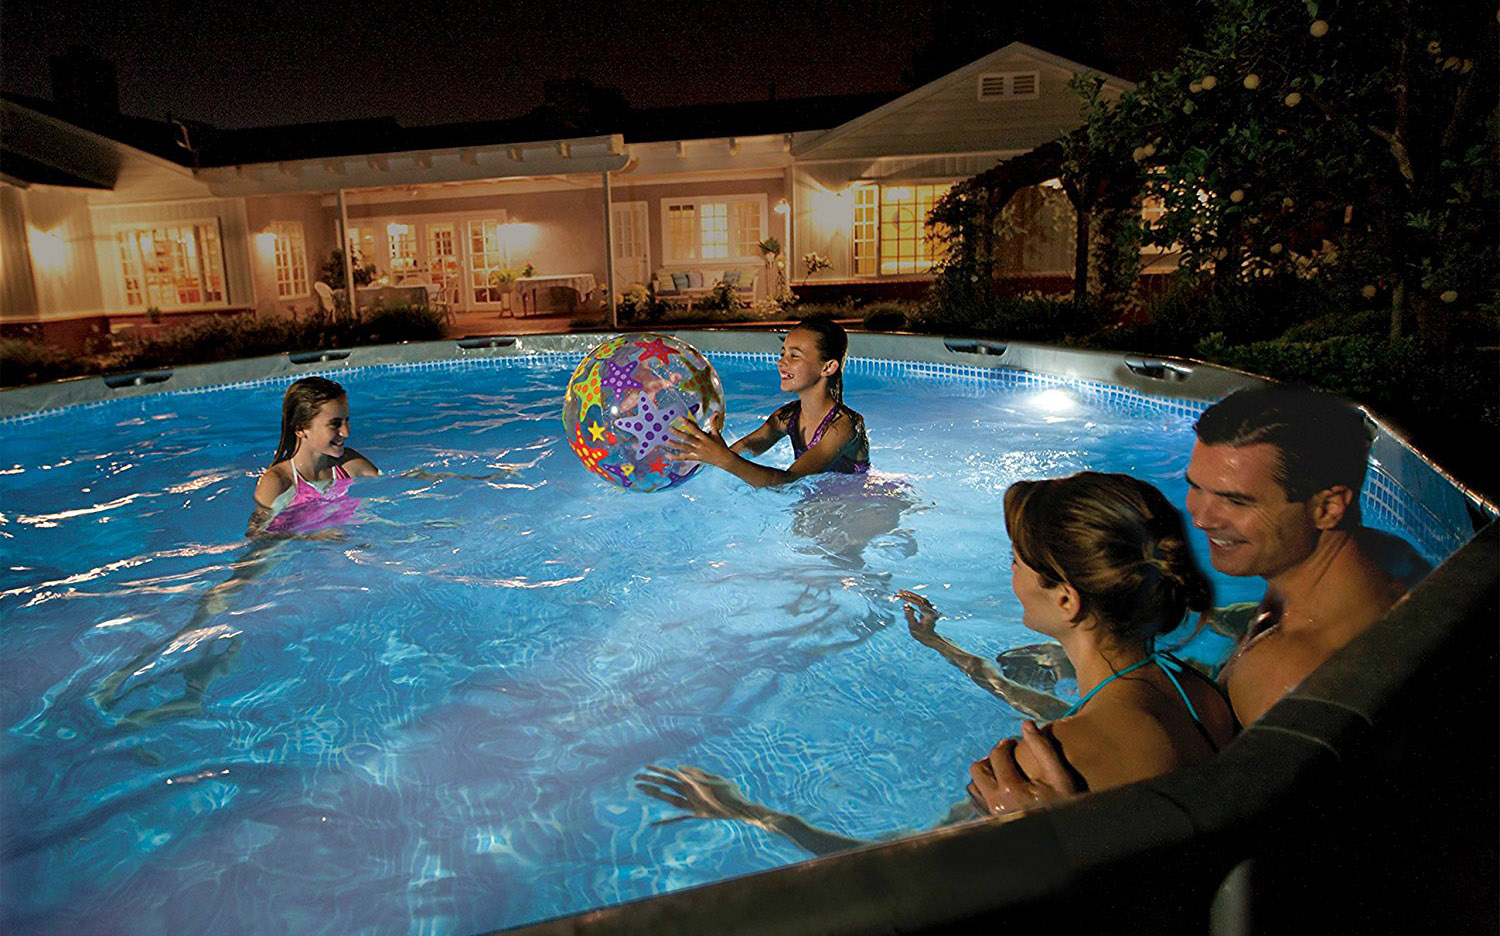 Jacuzzi Pool Amazon 10 Best Floating Pool Lights Underwater Pool Lights To Consider